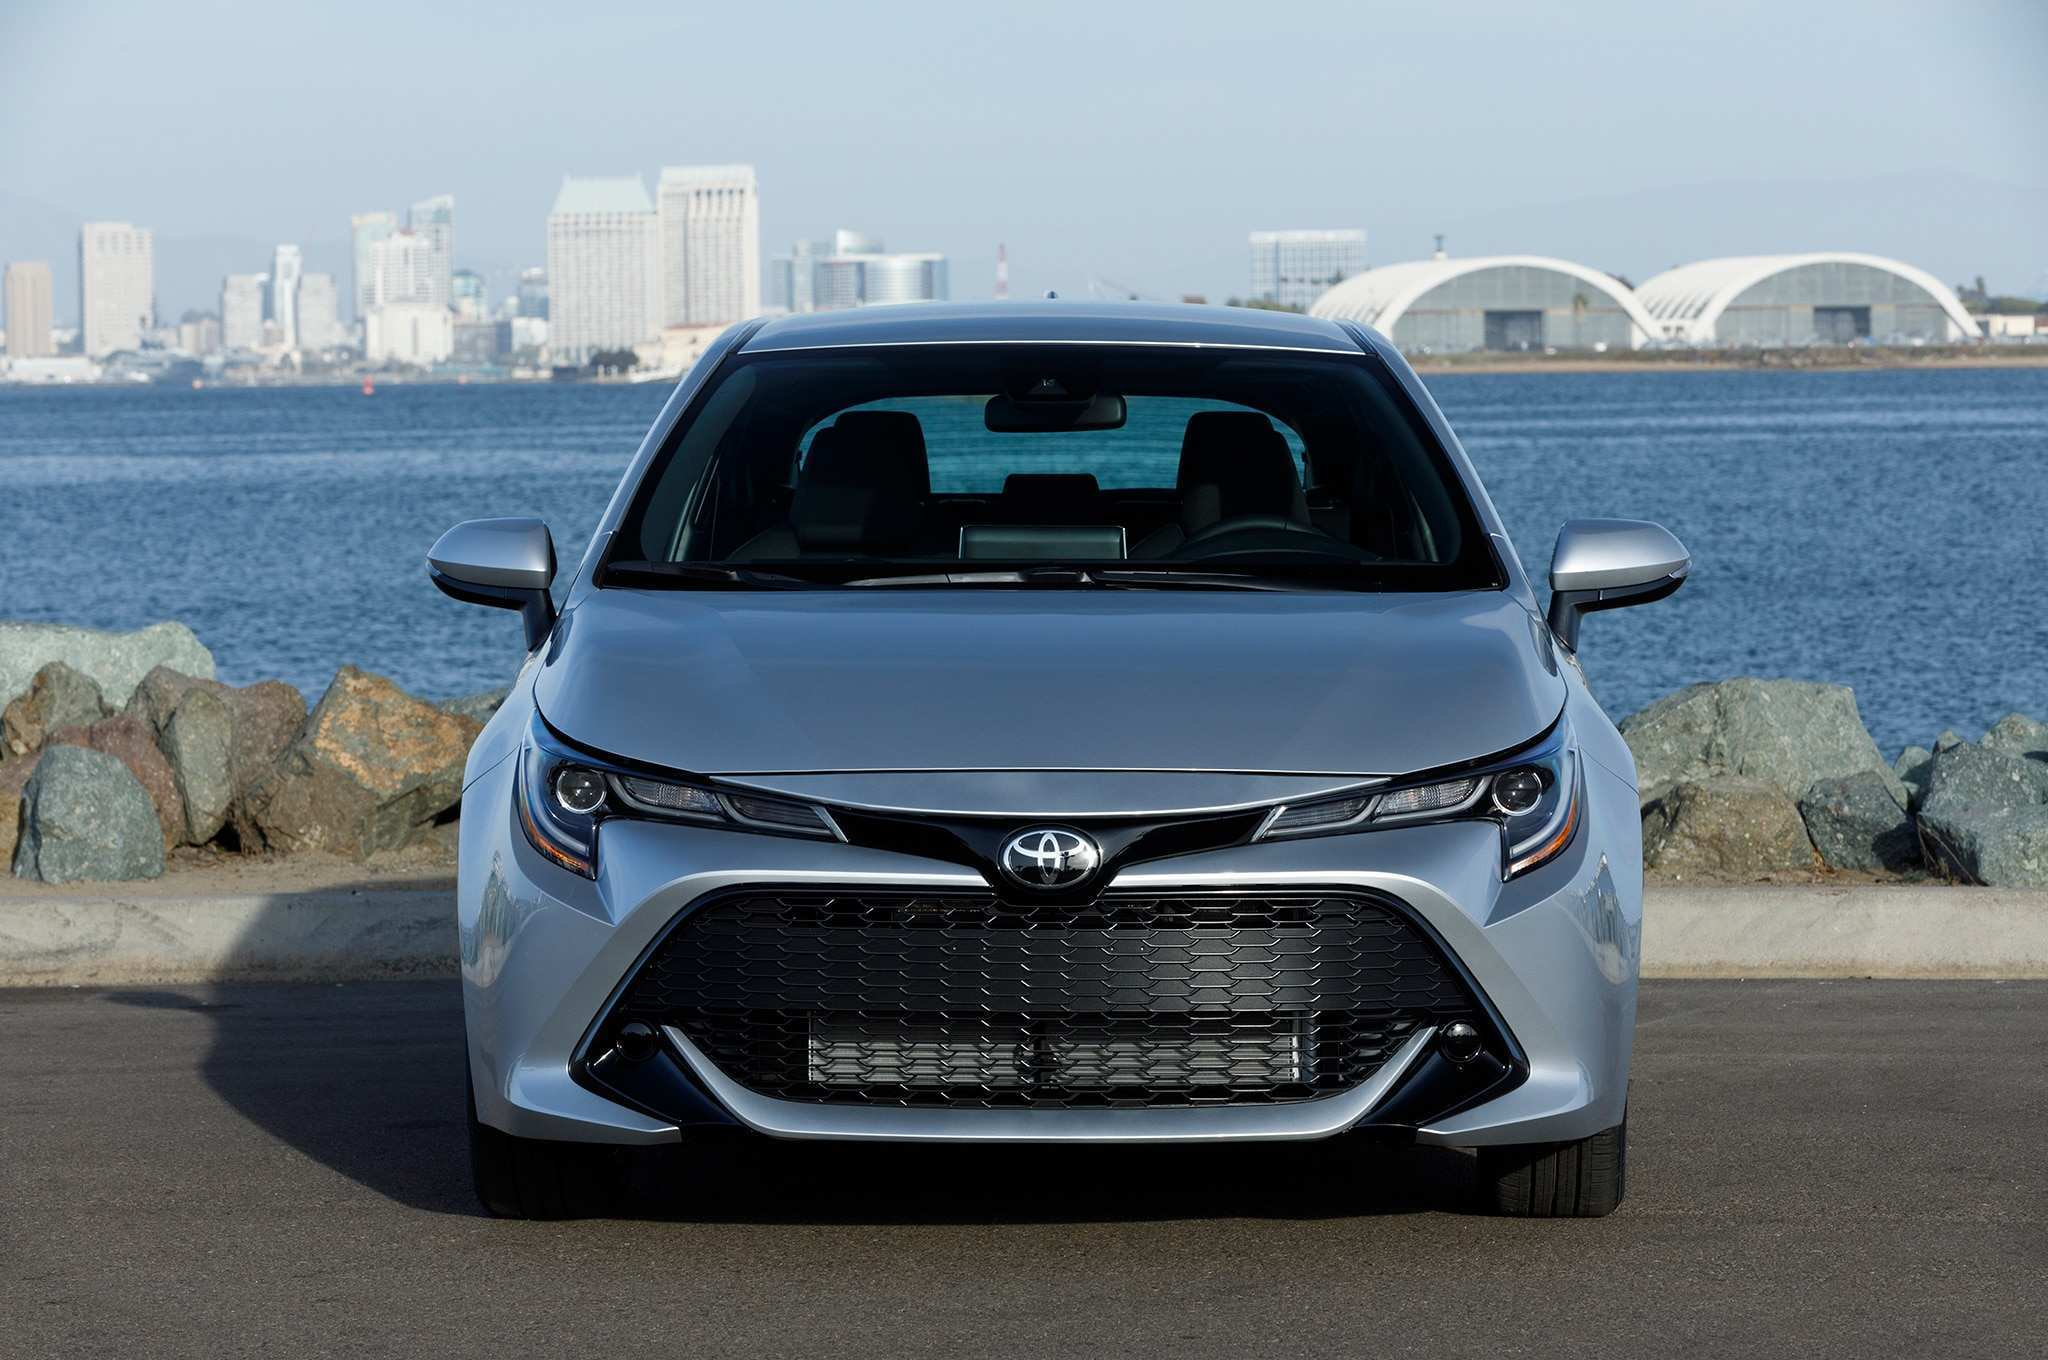 32 New Toyota Upcoming Cars 2020 New Review with Toyota Upcoming Cars 2020